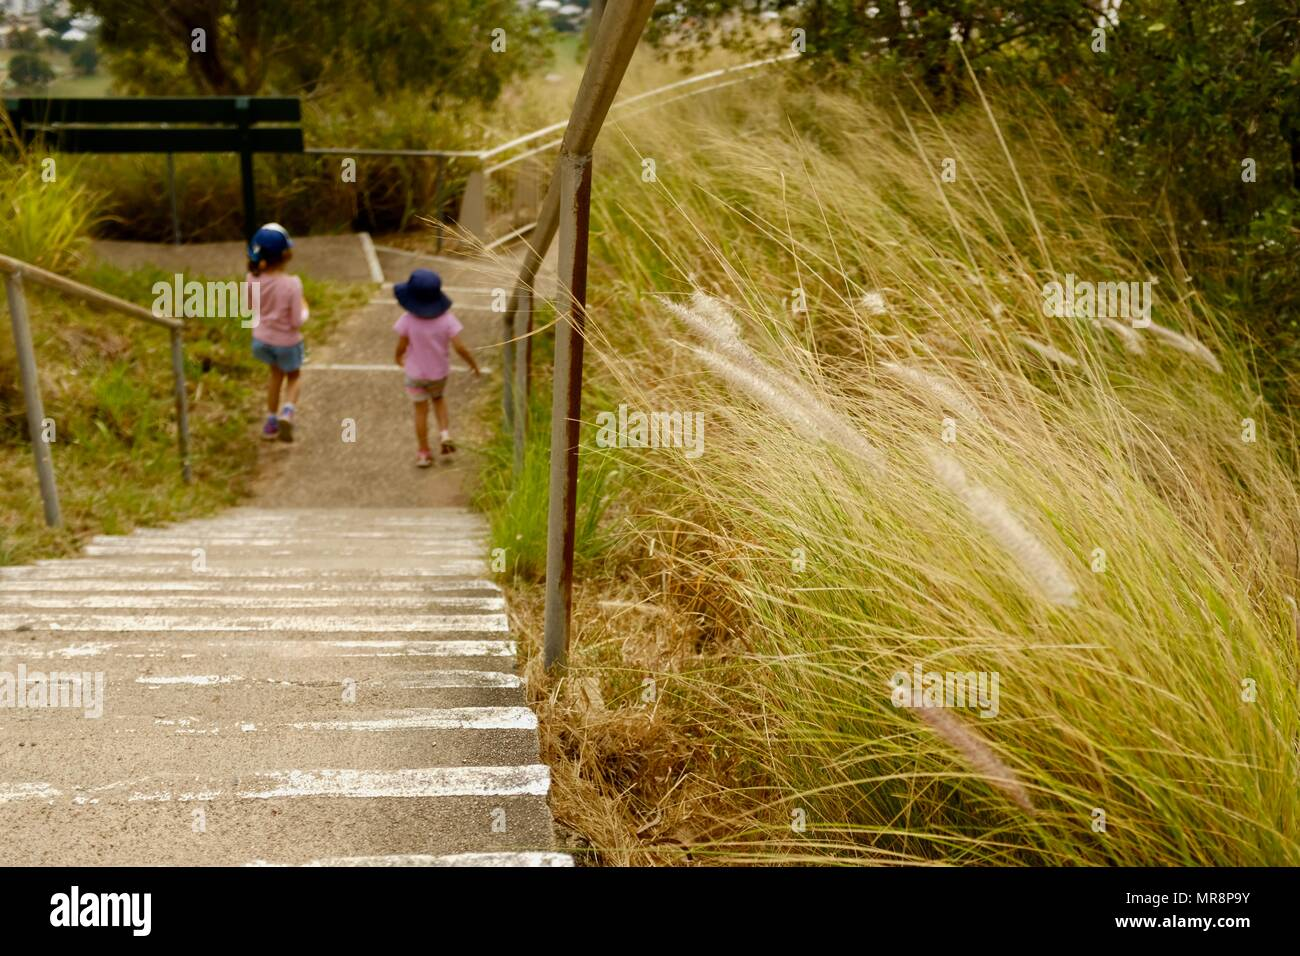 Two children at the bottom of a flight of stairs surrounded by long grass, Castle Hill QLD 4810, Australia - Stock Image